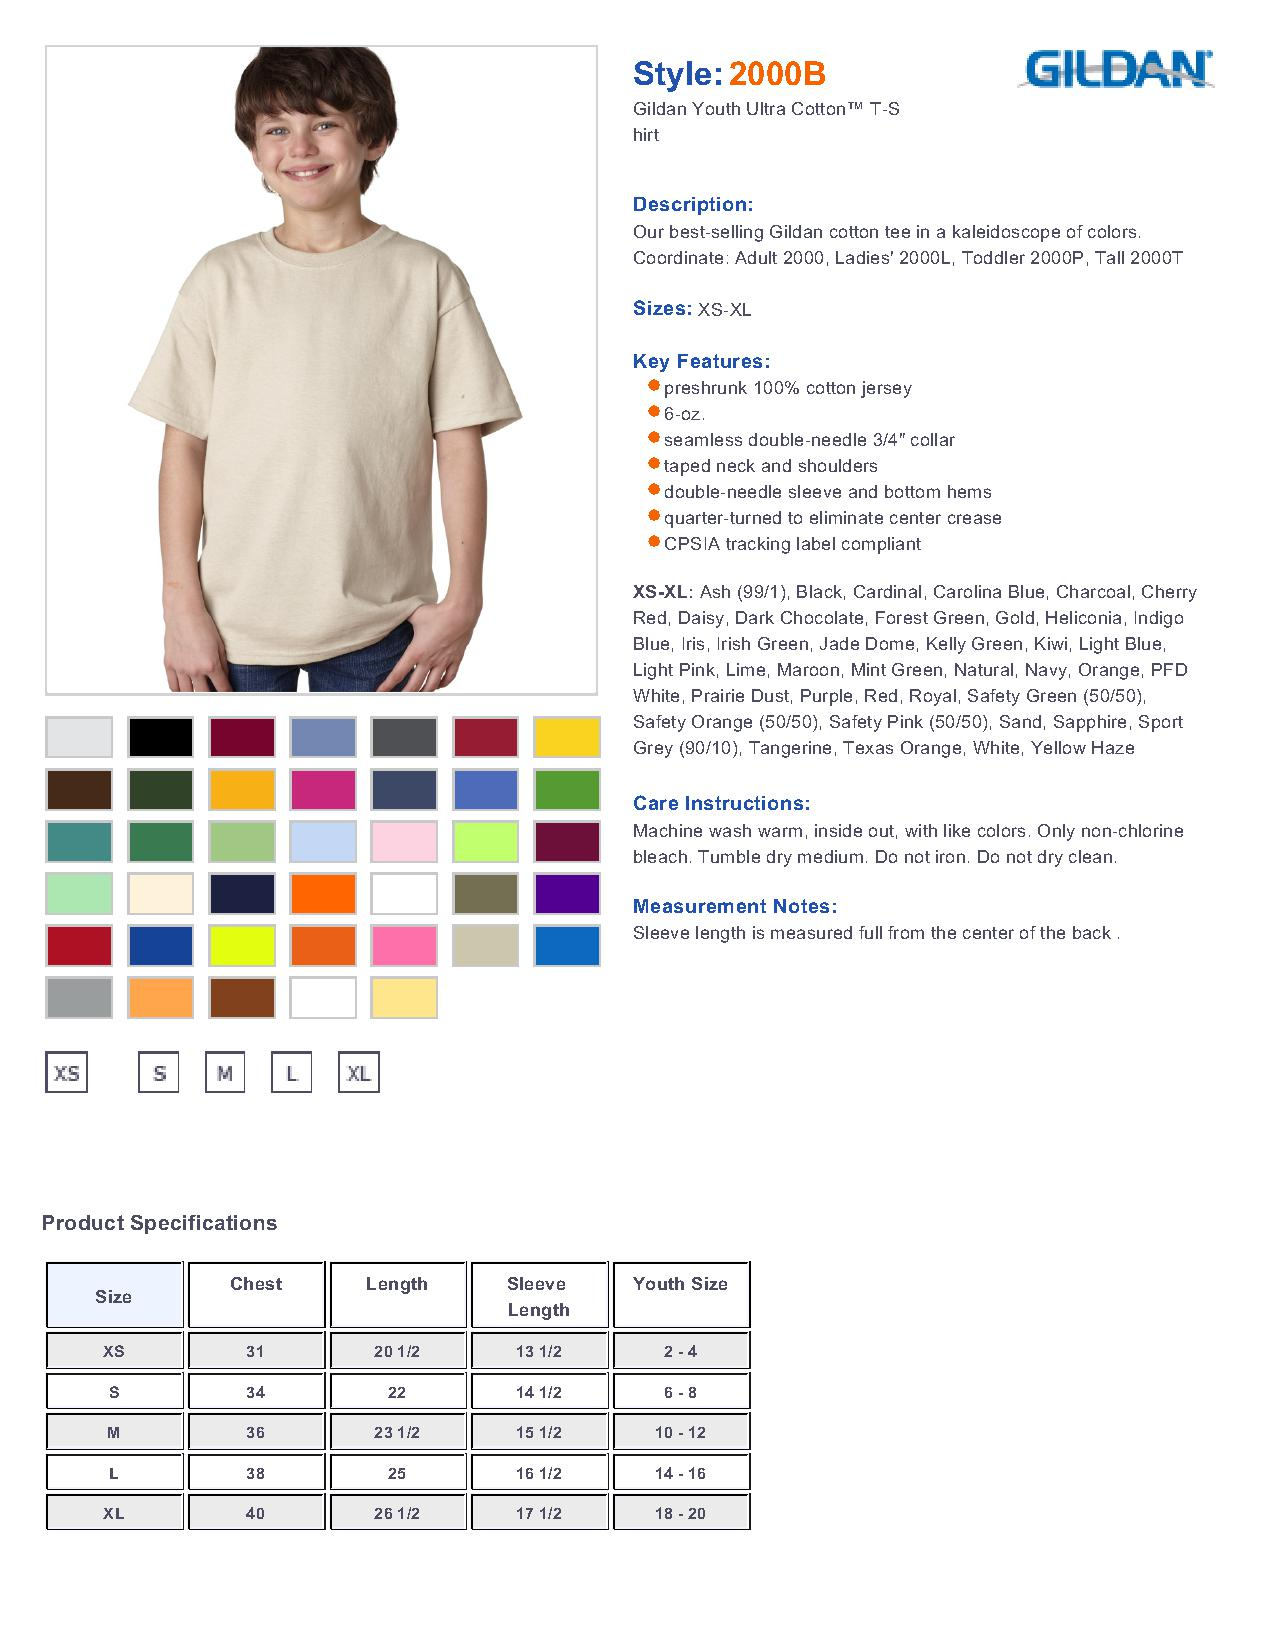 Gildan ultra cotton youth t shirt 2000b 361 youths t shirts specs sizing specs nvjuhfo Image collections